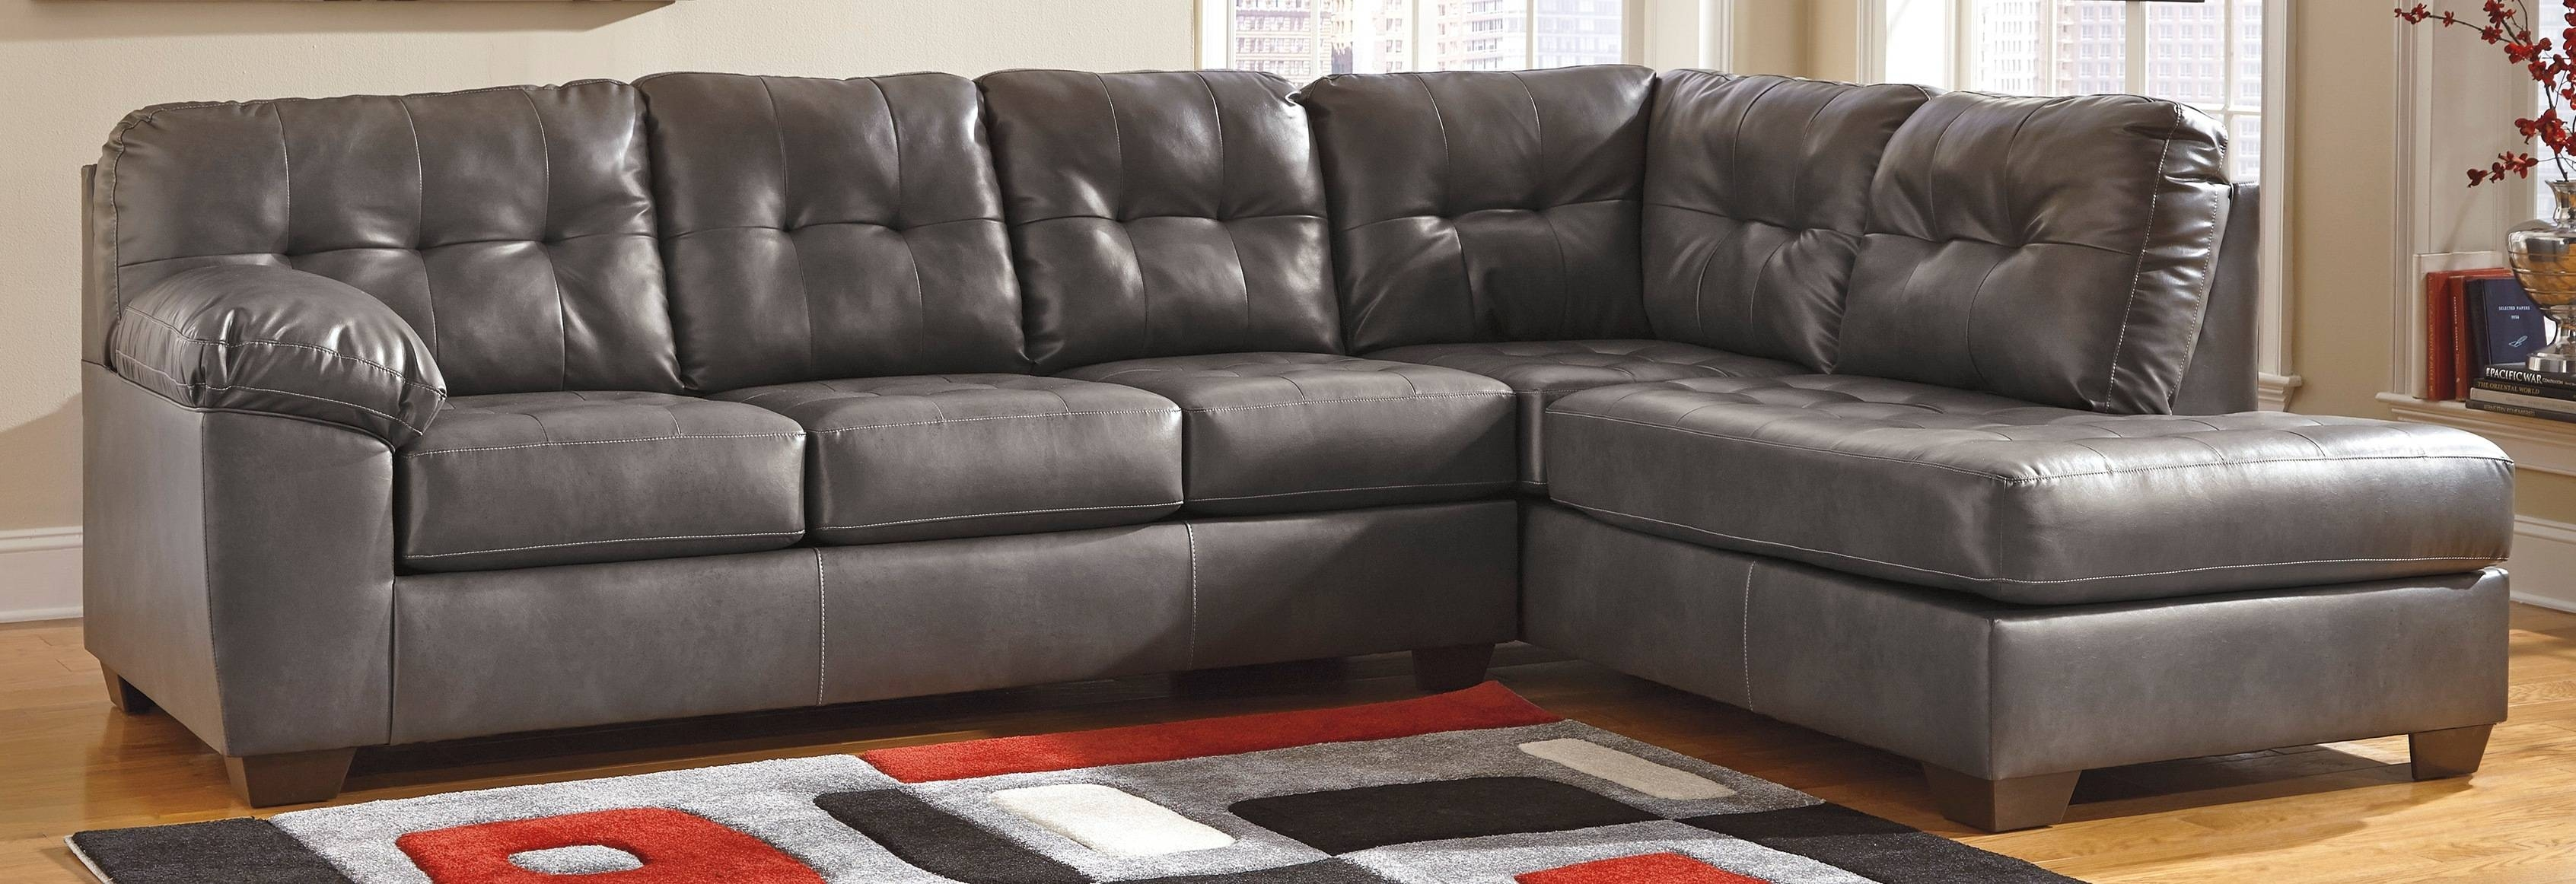 30 s Gray Leather Sectional Sofas